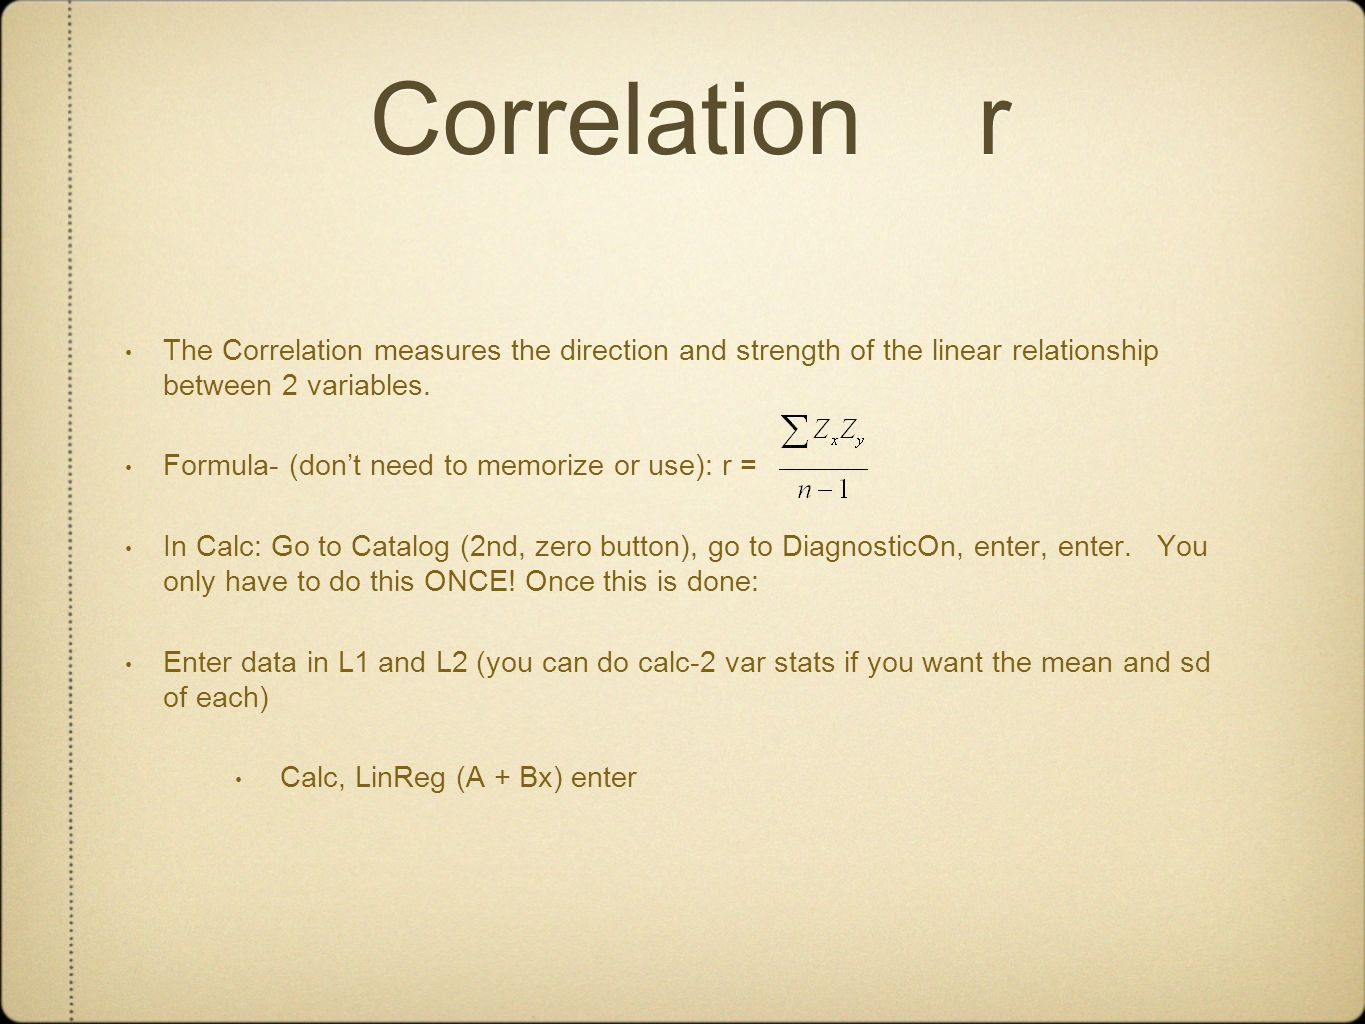 Correlation r The Correlation measures the direction and strength of the linear relationship between 2 variables.